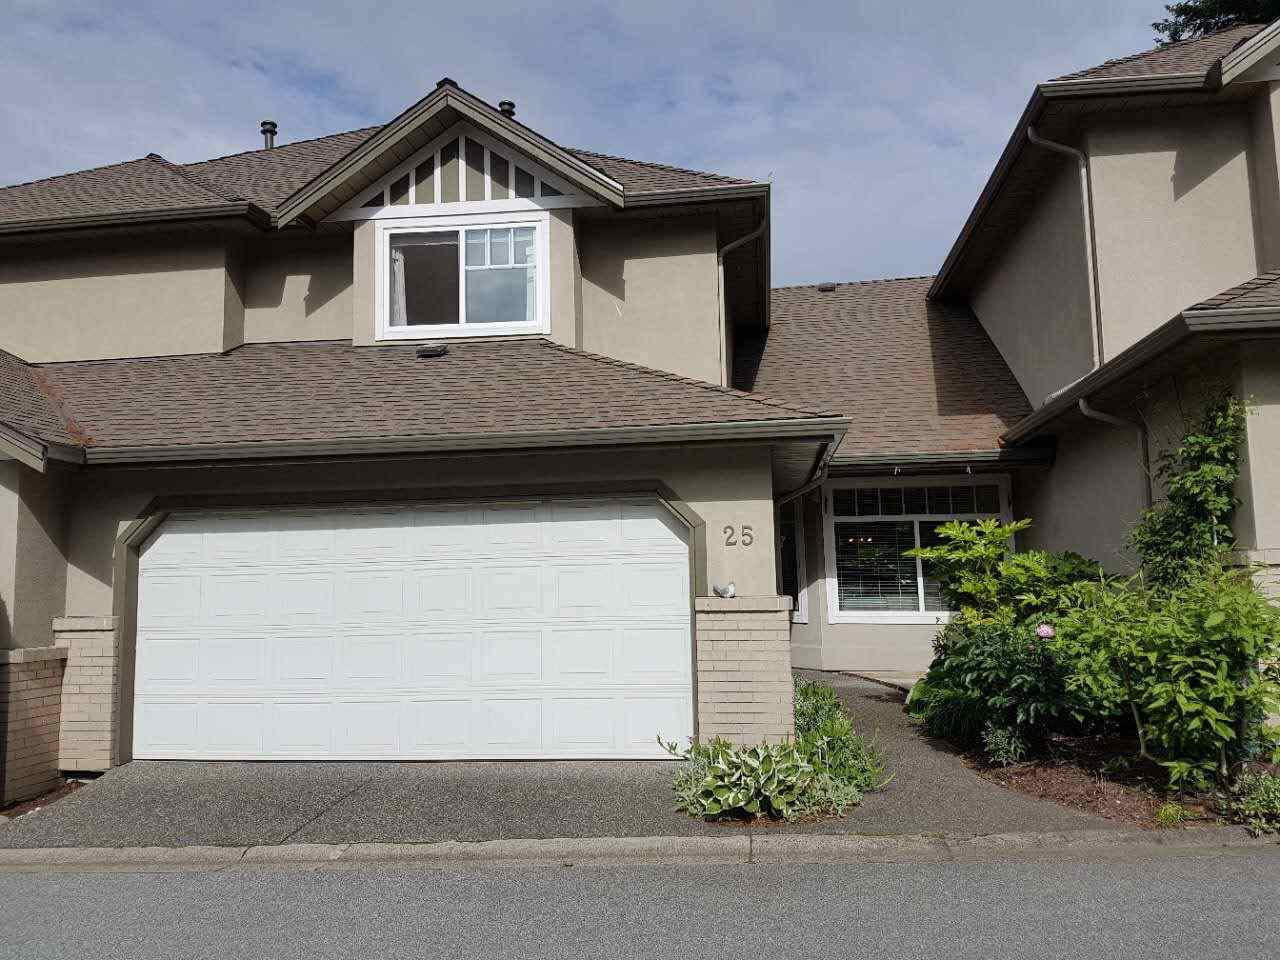 Main Photo: 25 15151 26 AVENUE in : Sunnyside Park Surrey Townhouse for sale : MLS®# R2172703